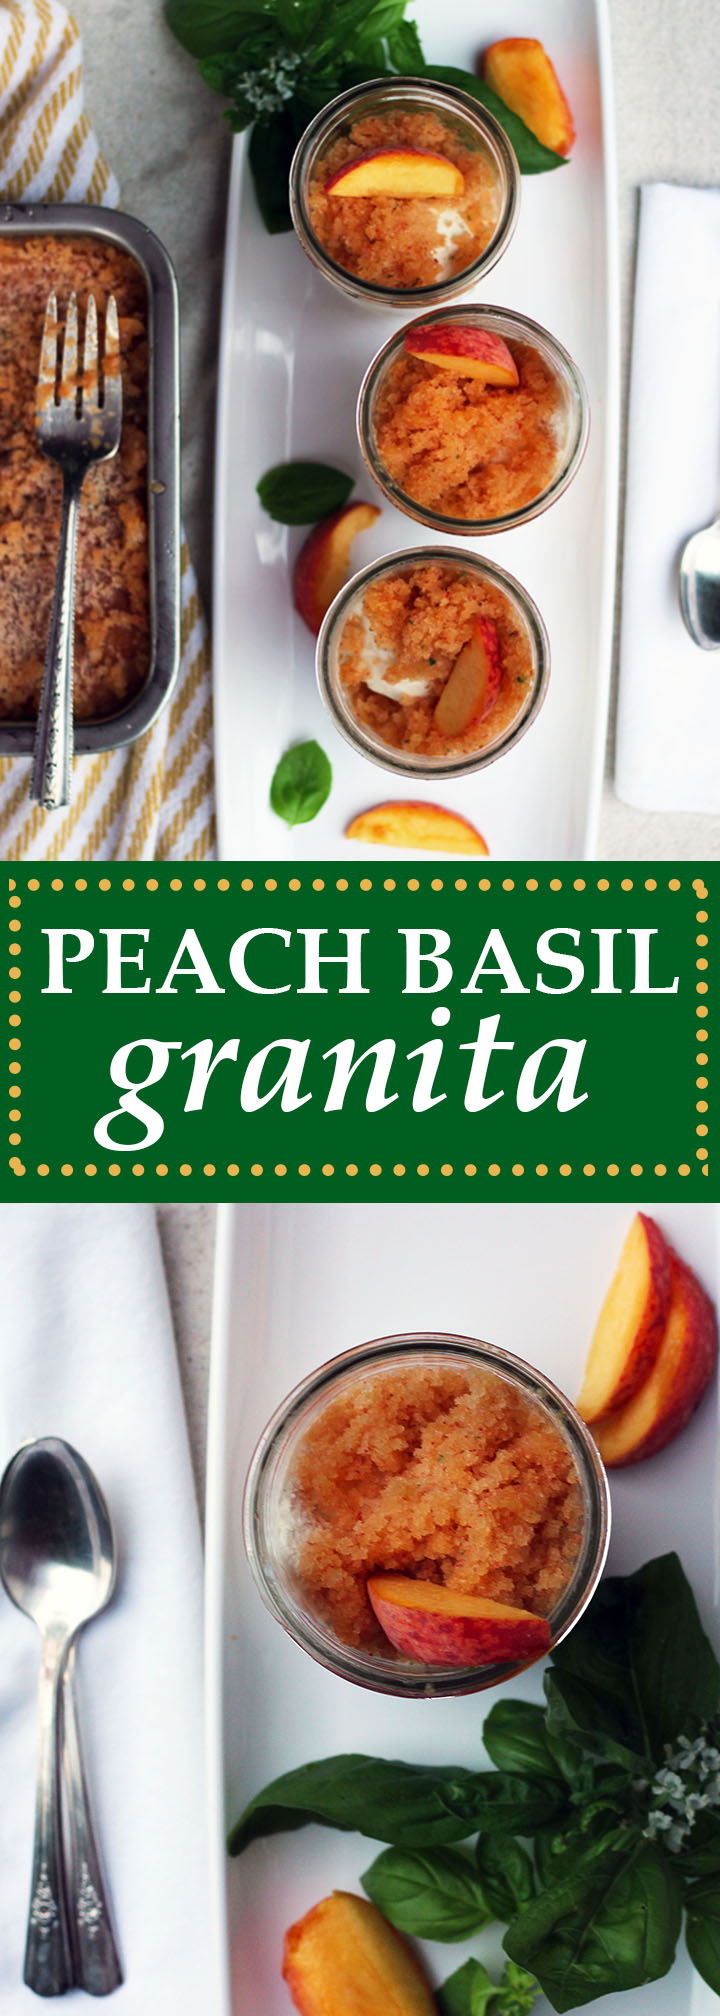 Peach Basil Granita | www.thetableofcontents.co